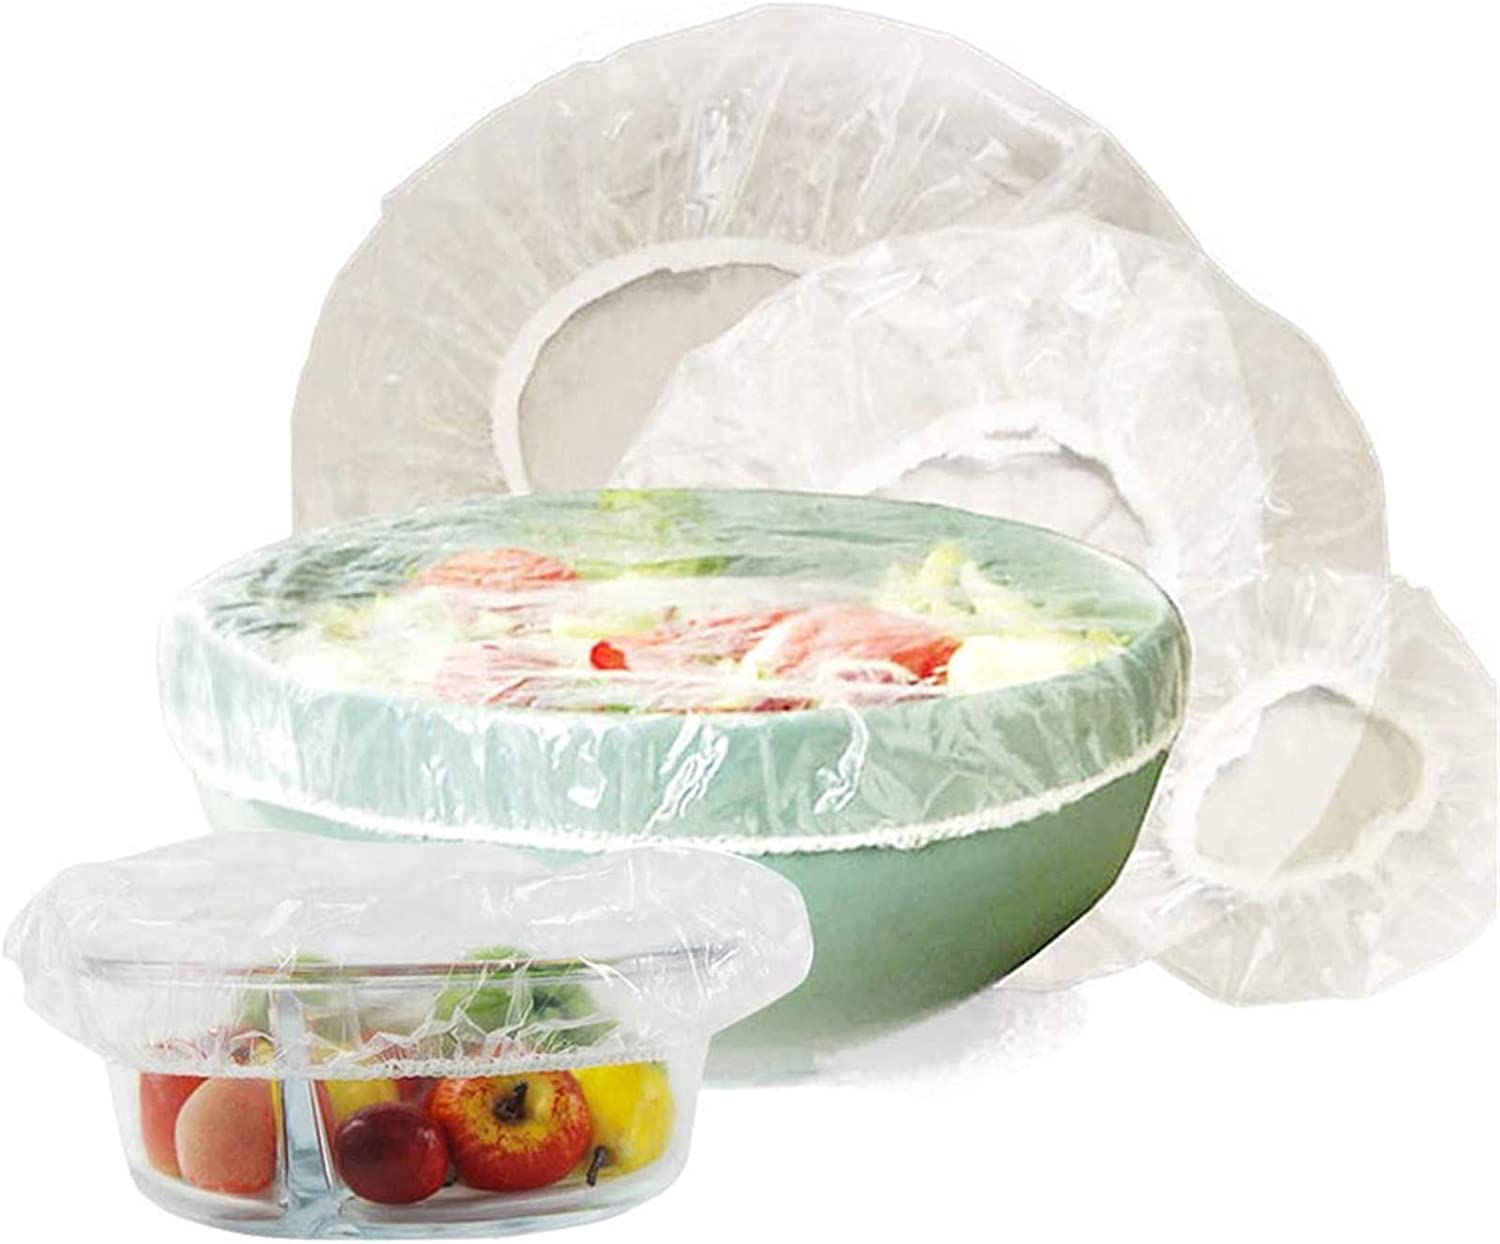 100pcs Reusable Elastic Food Storage Covers, Plastic Bowl Covers with Elastic Edging, Stretchable Plastic Food Wraps, Elastic Covers for Storage Containers